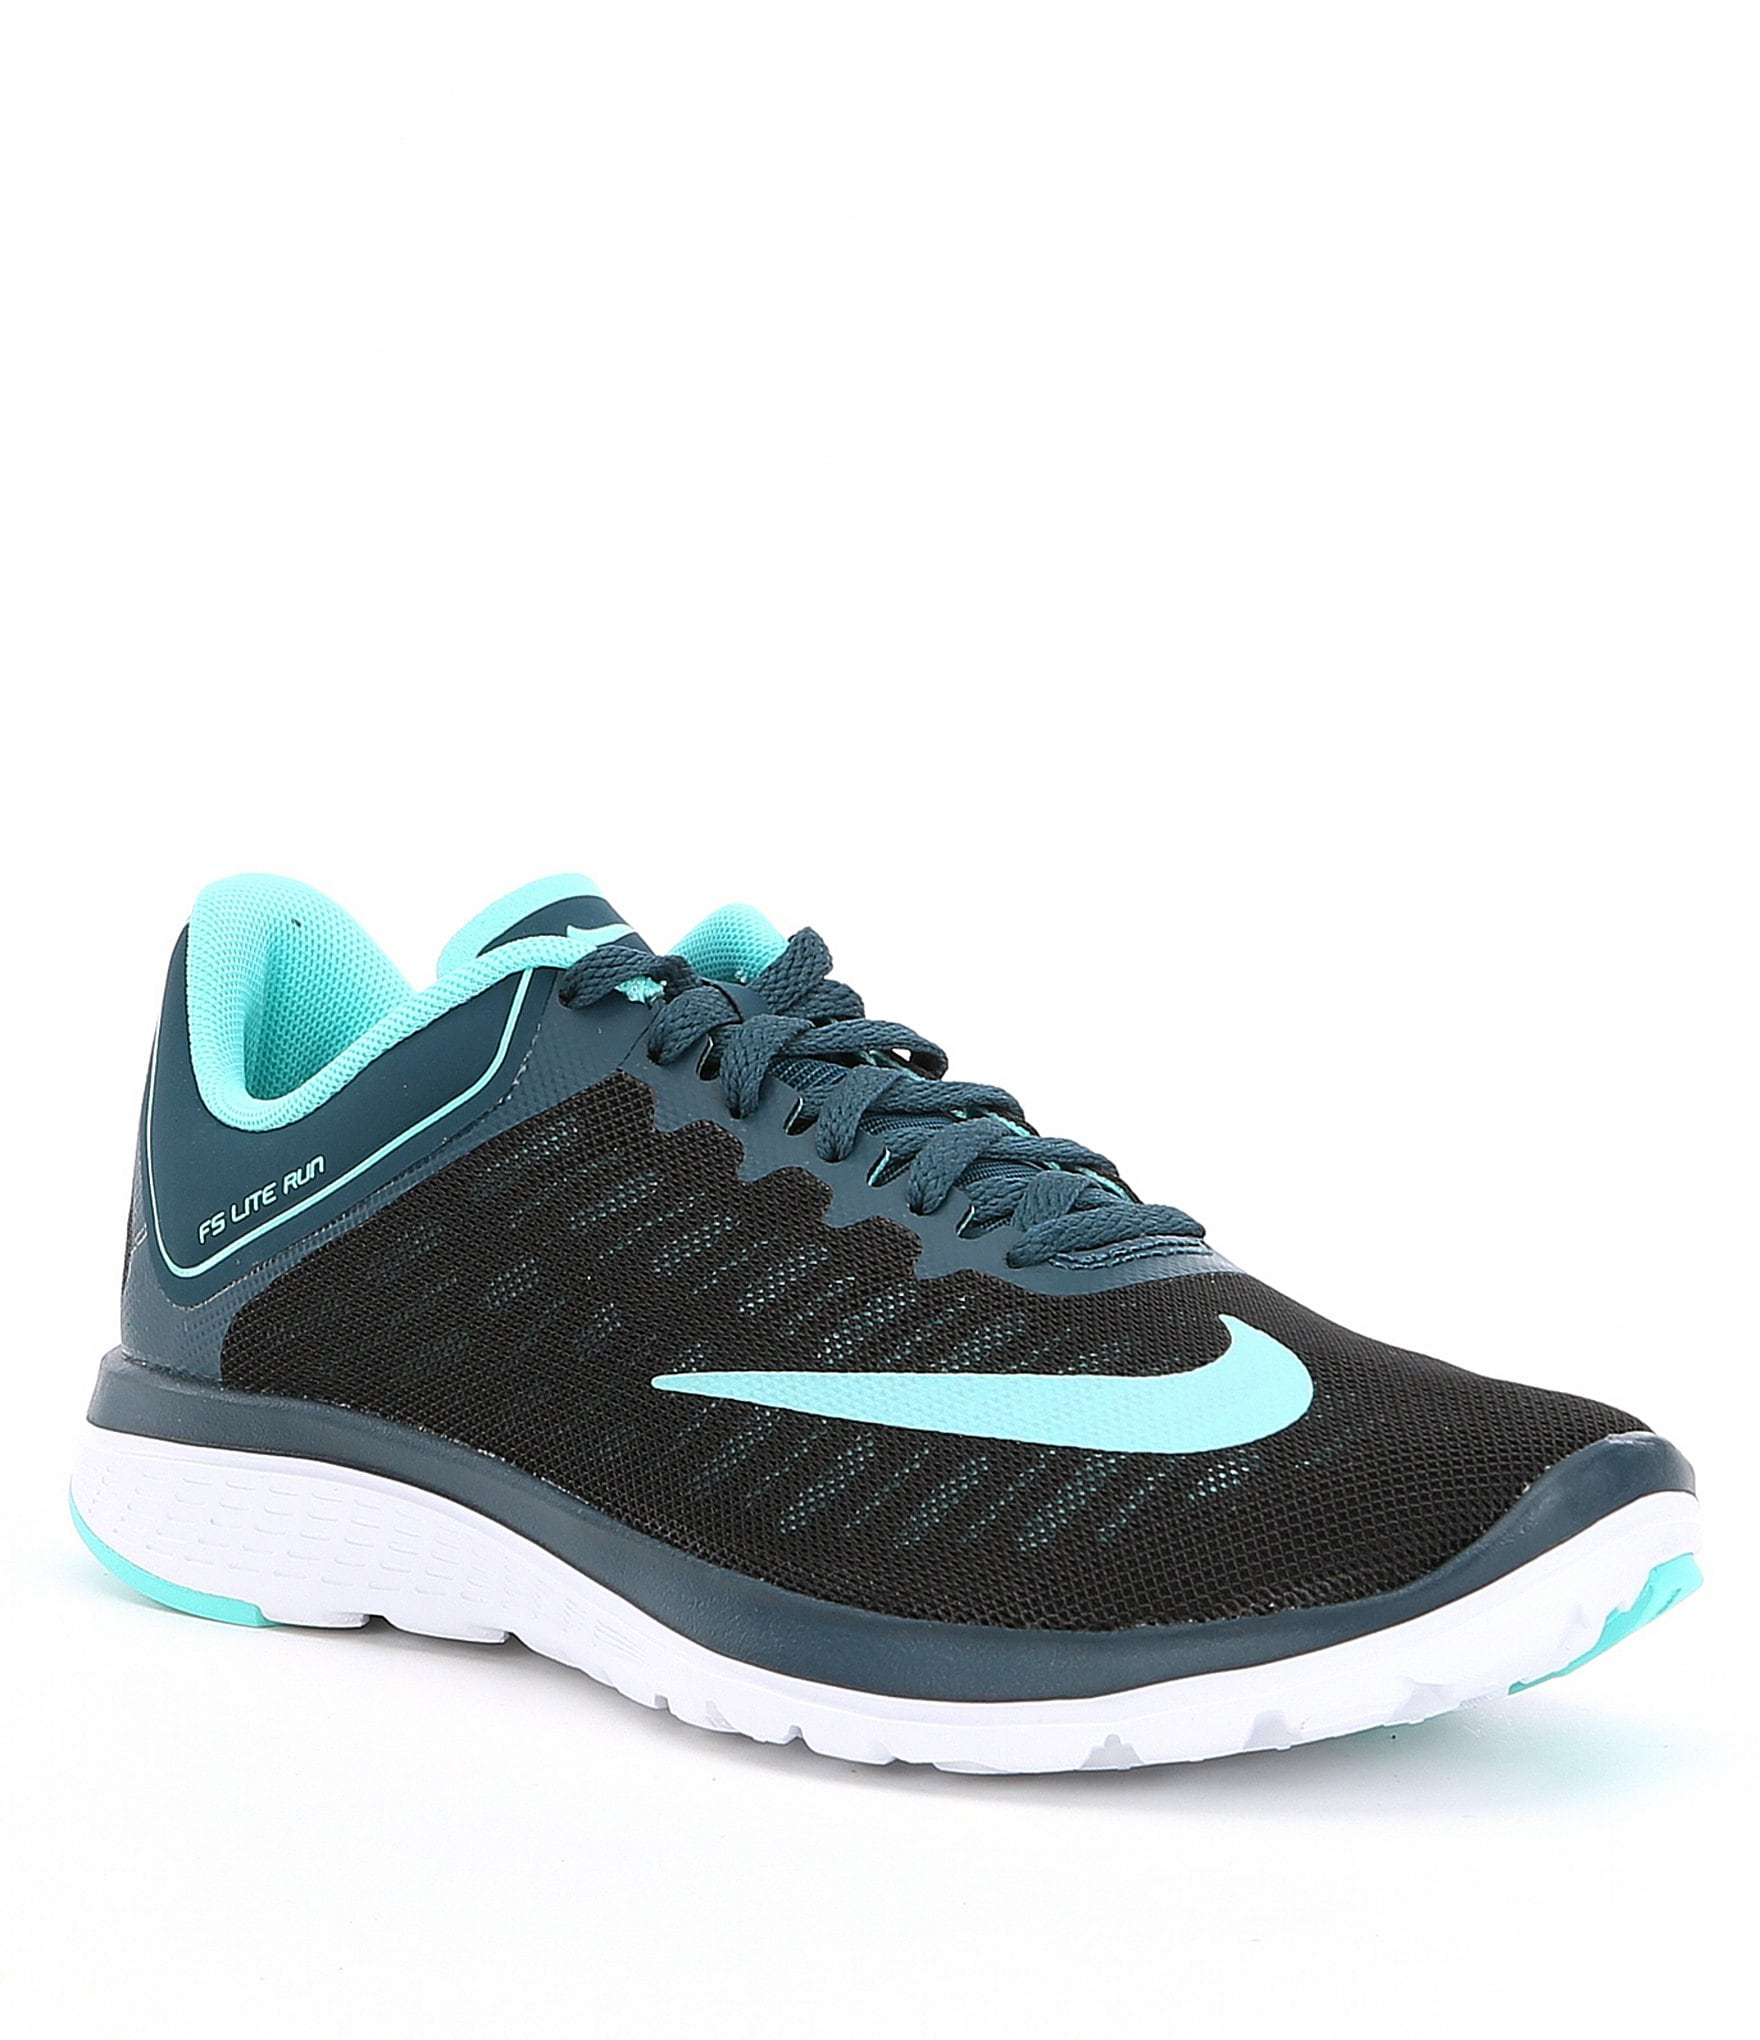 Shop for Nike shoes online at realmmaster-radio.ga, where we feature great values for men and women on Nike running shoes, cross trainers, athleisure shoes, casual shoes, sneakers, and more.